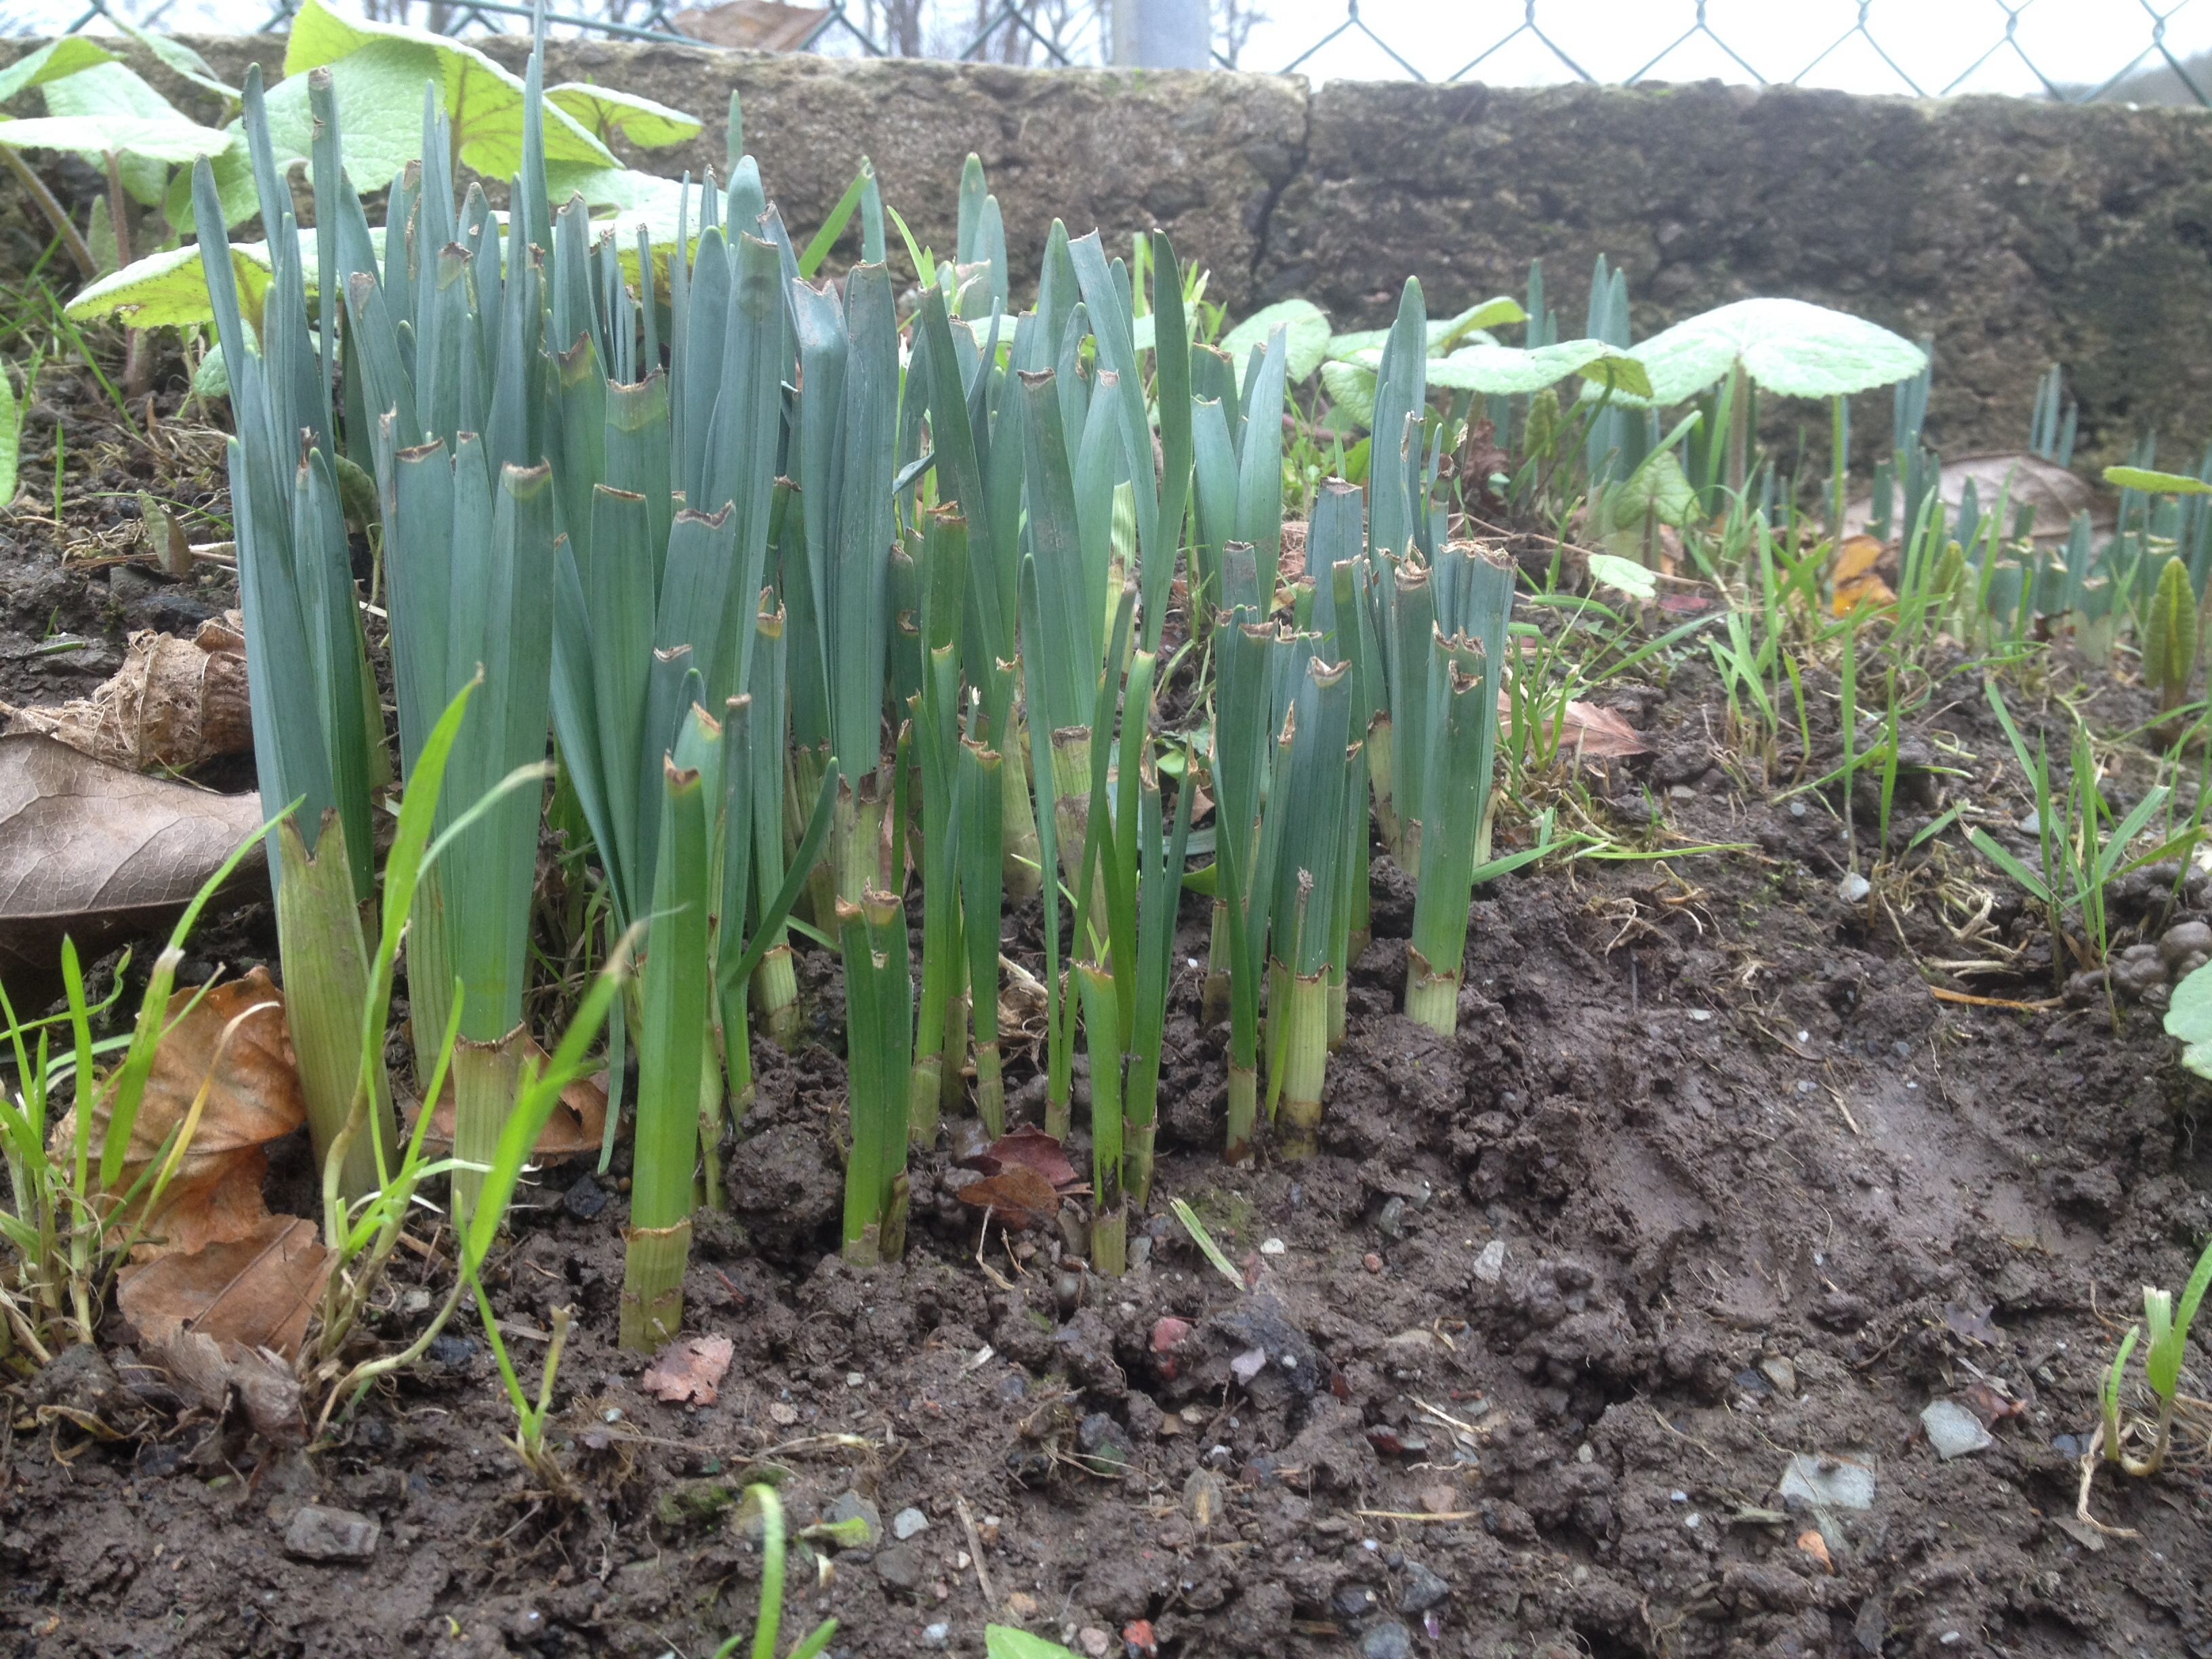 Daffodils in January 2015